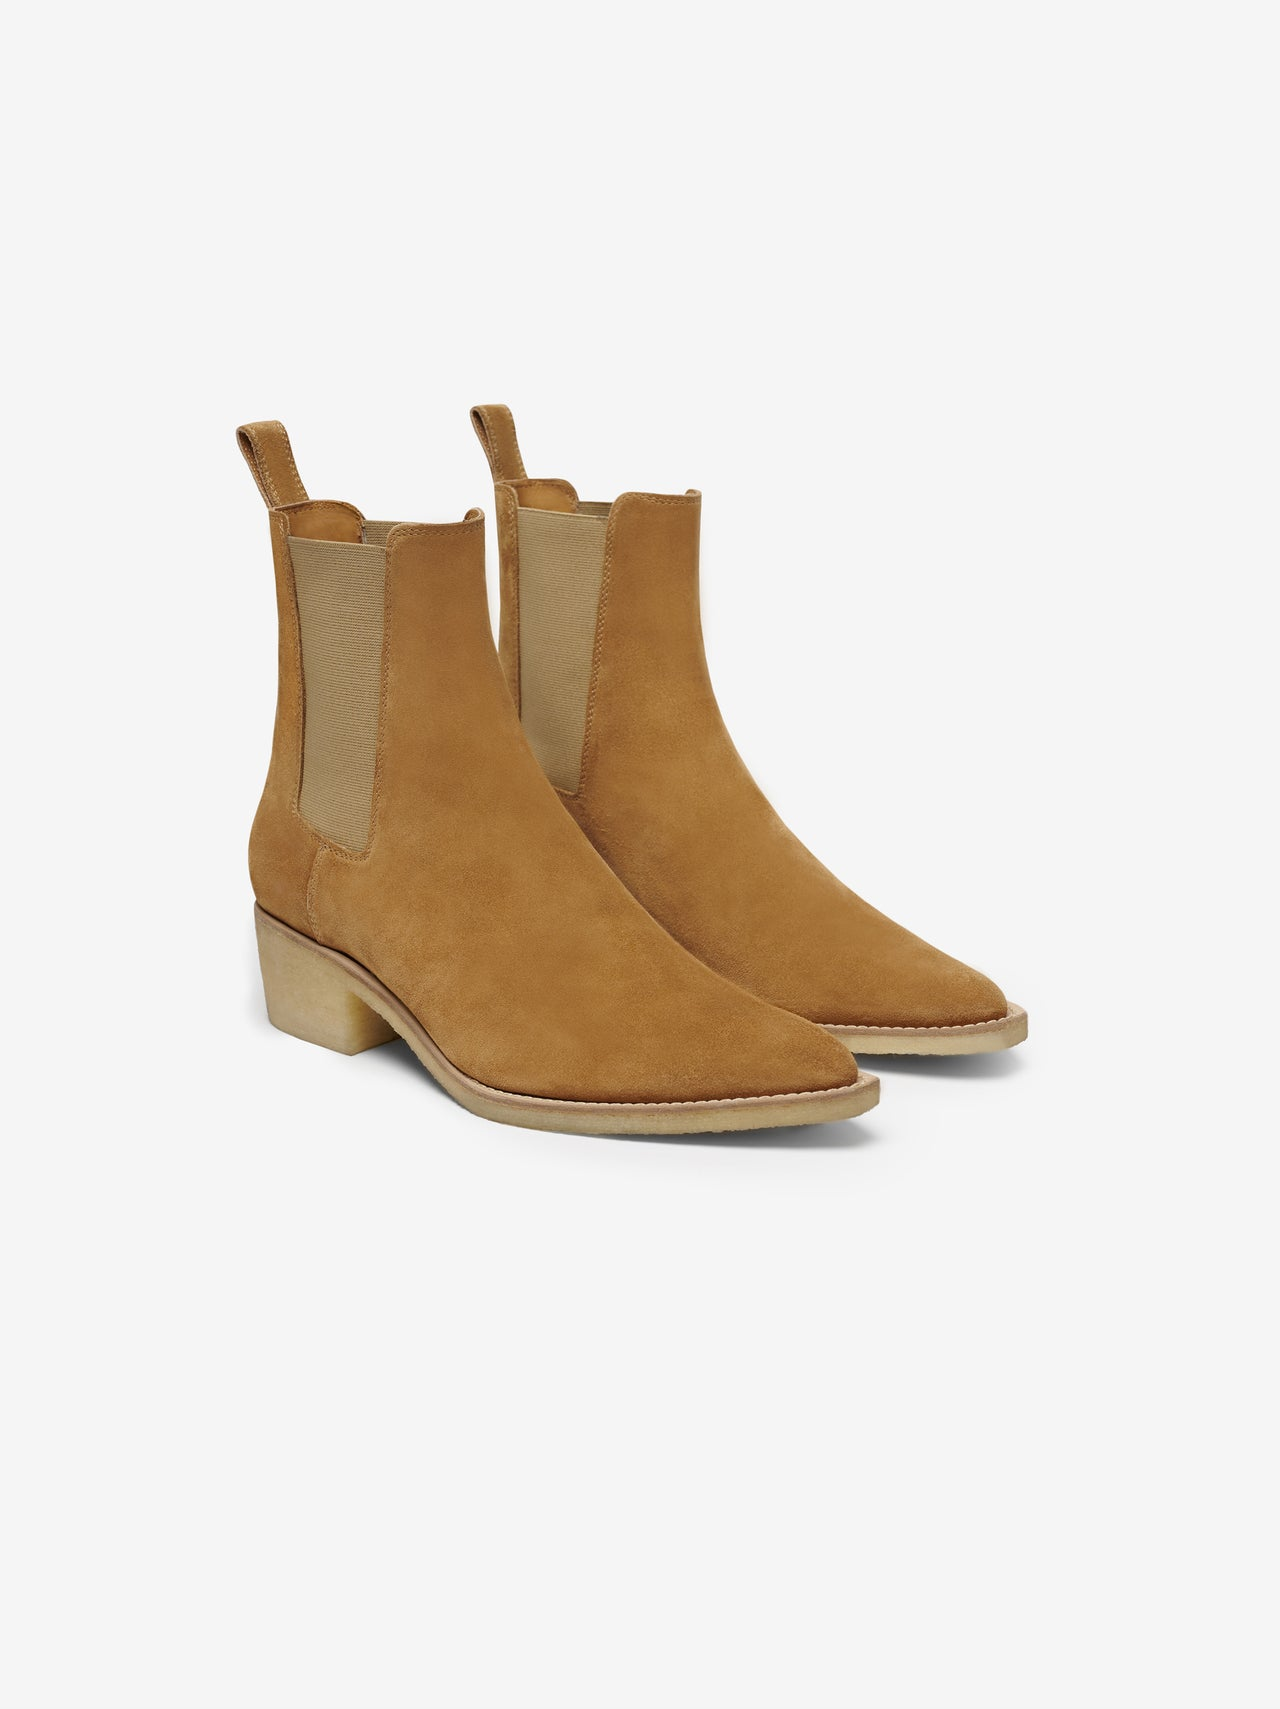 CHELSEA CREPE SOLE BOOT - BROWN / NATURAL